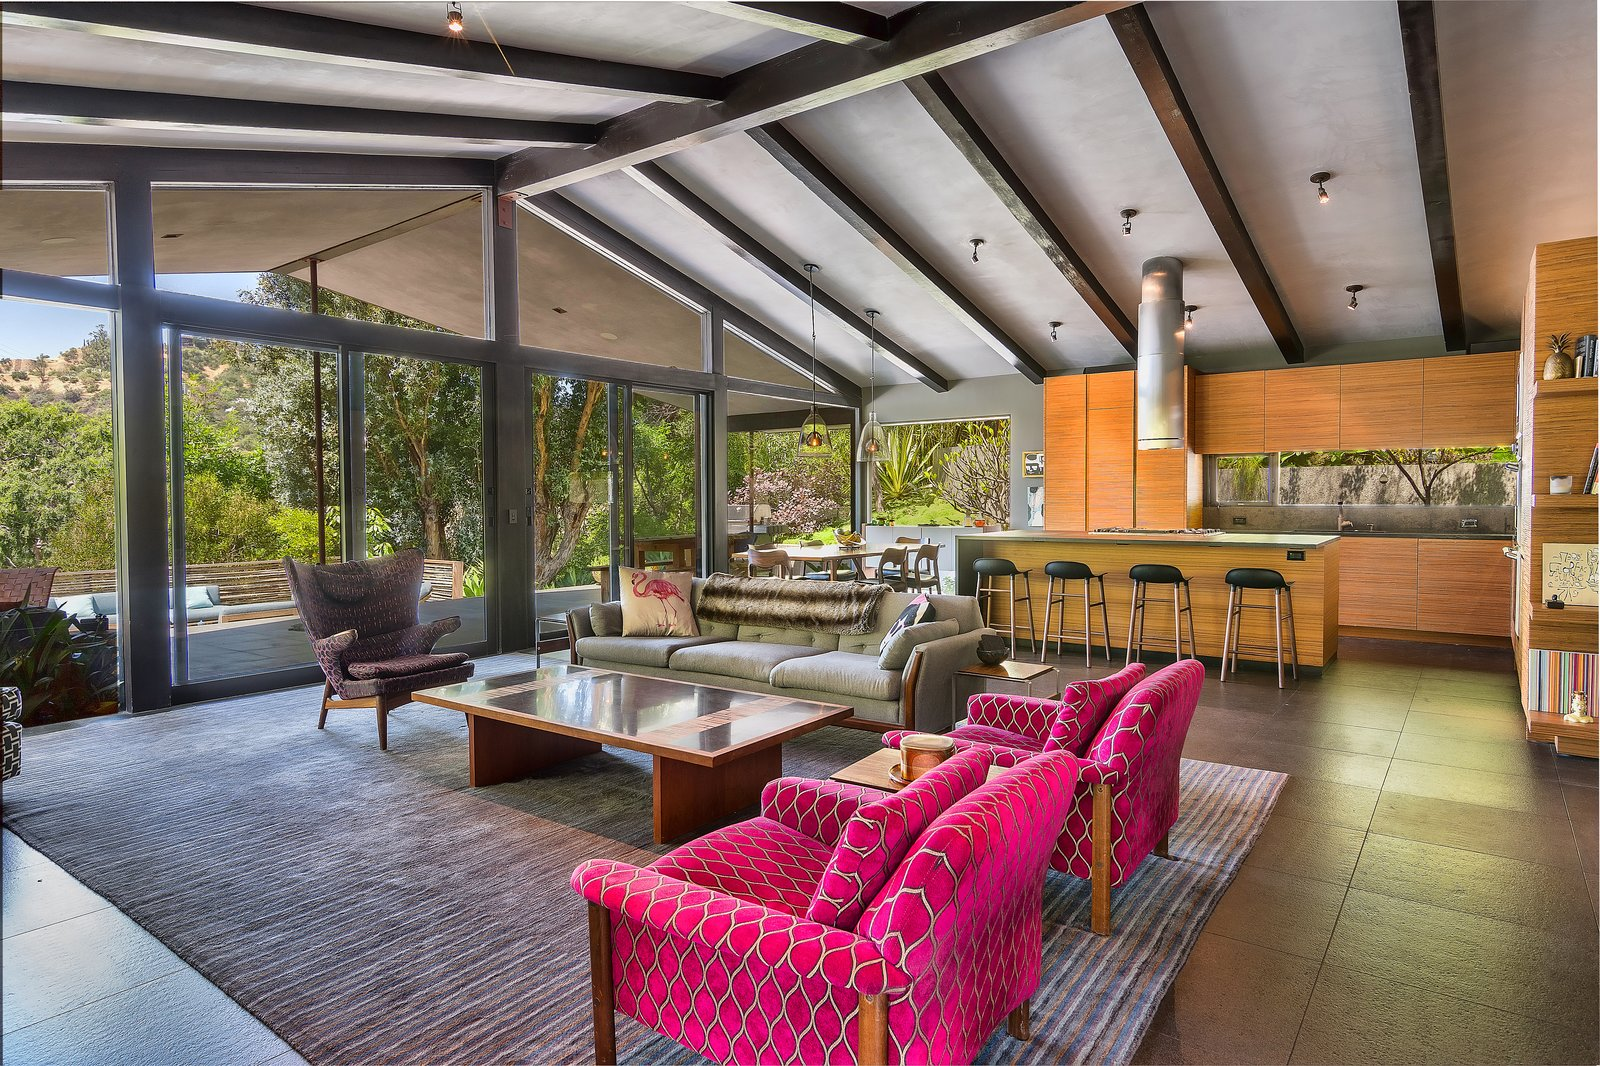 Living Room, Chair, Ceiling Lighting, Coffee Tables, Sofa, and Stools  Photo 3 of 14 in John Legend and Chrissy Teigen's Former Midcentury Home in the Hollywood Hills Is For Sale